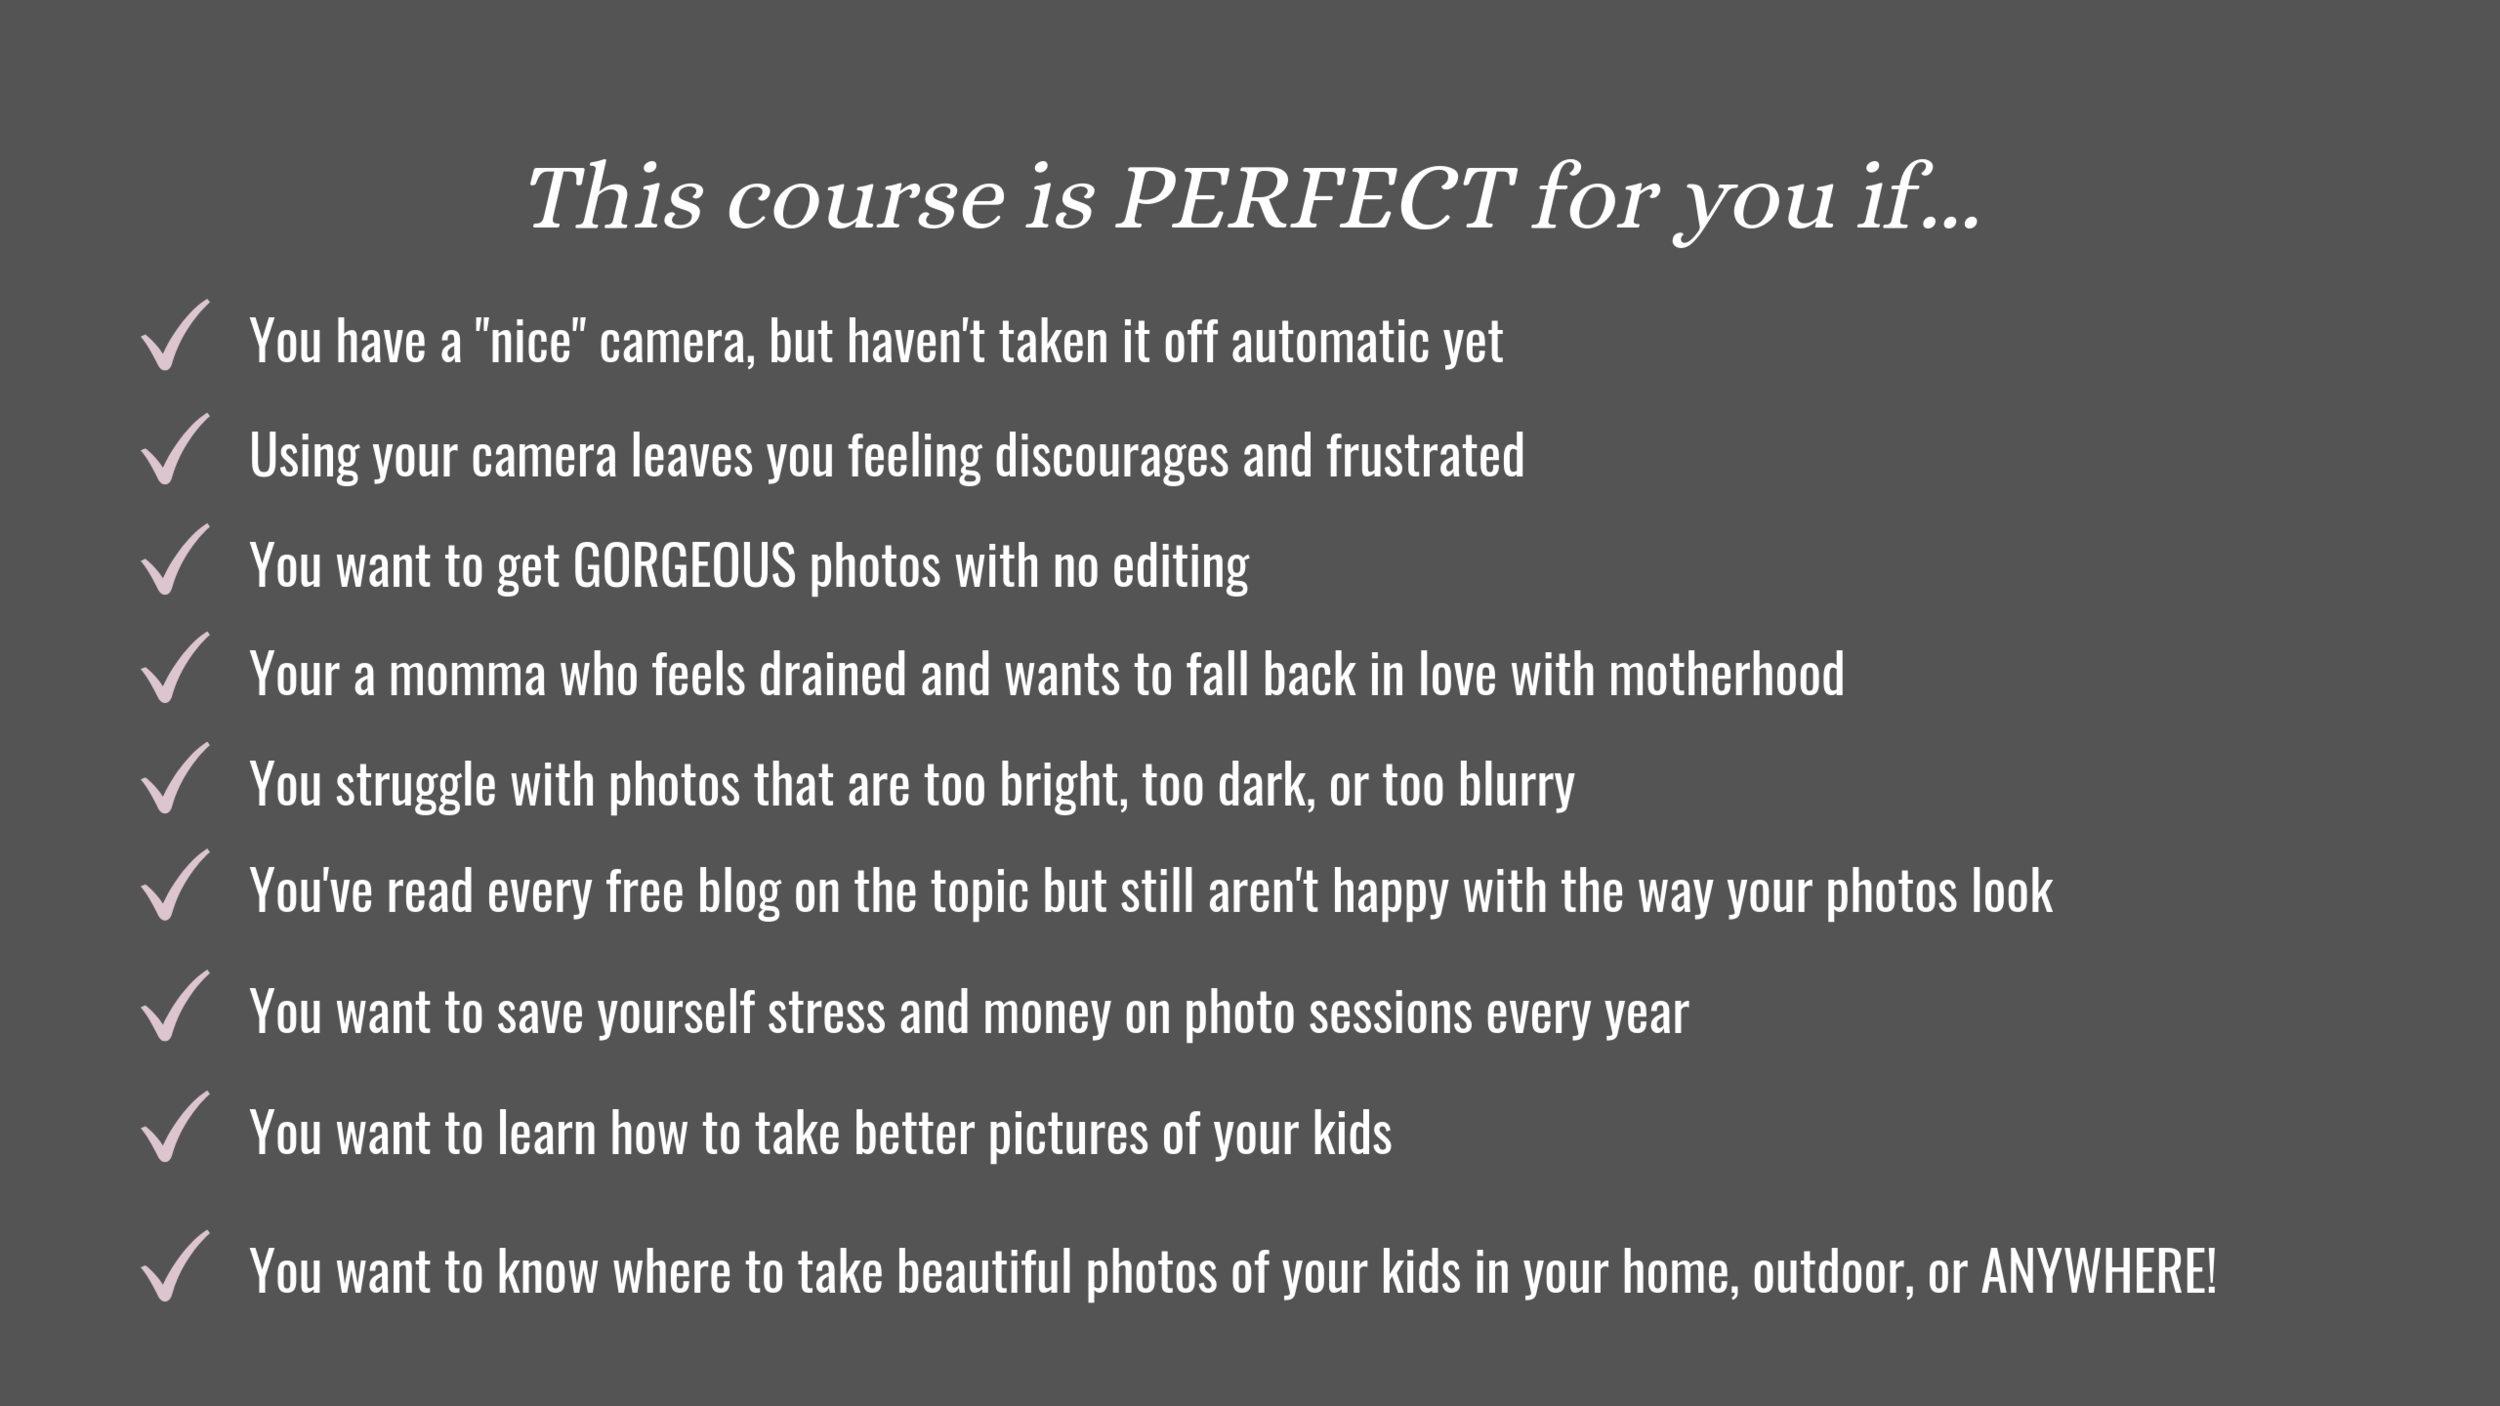 This course is PERFECT for you if....png